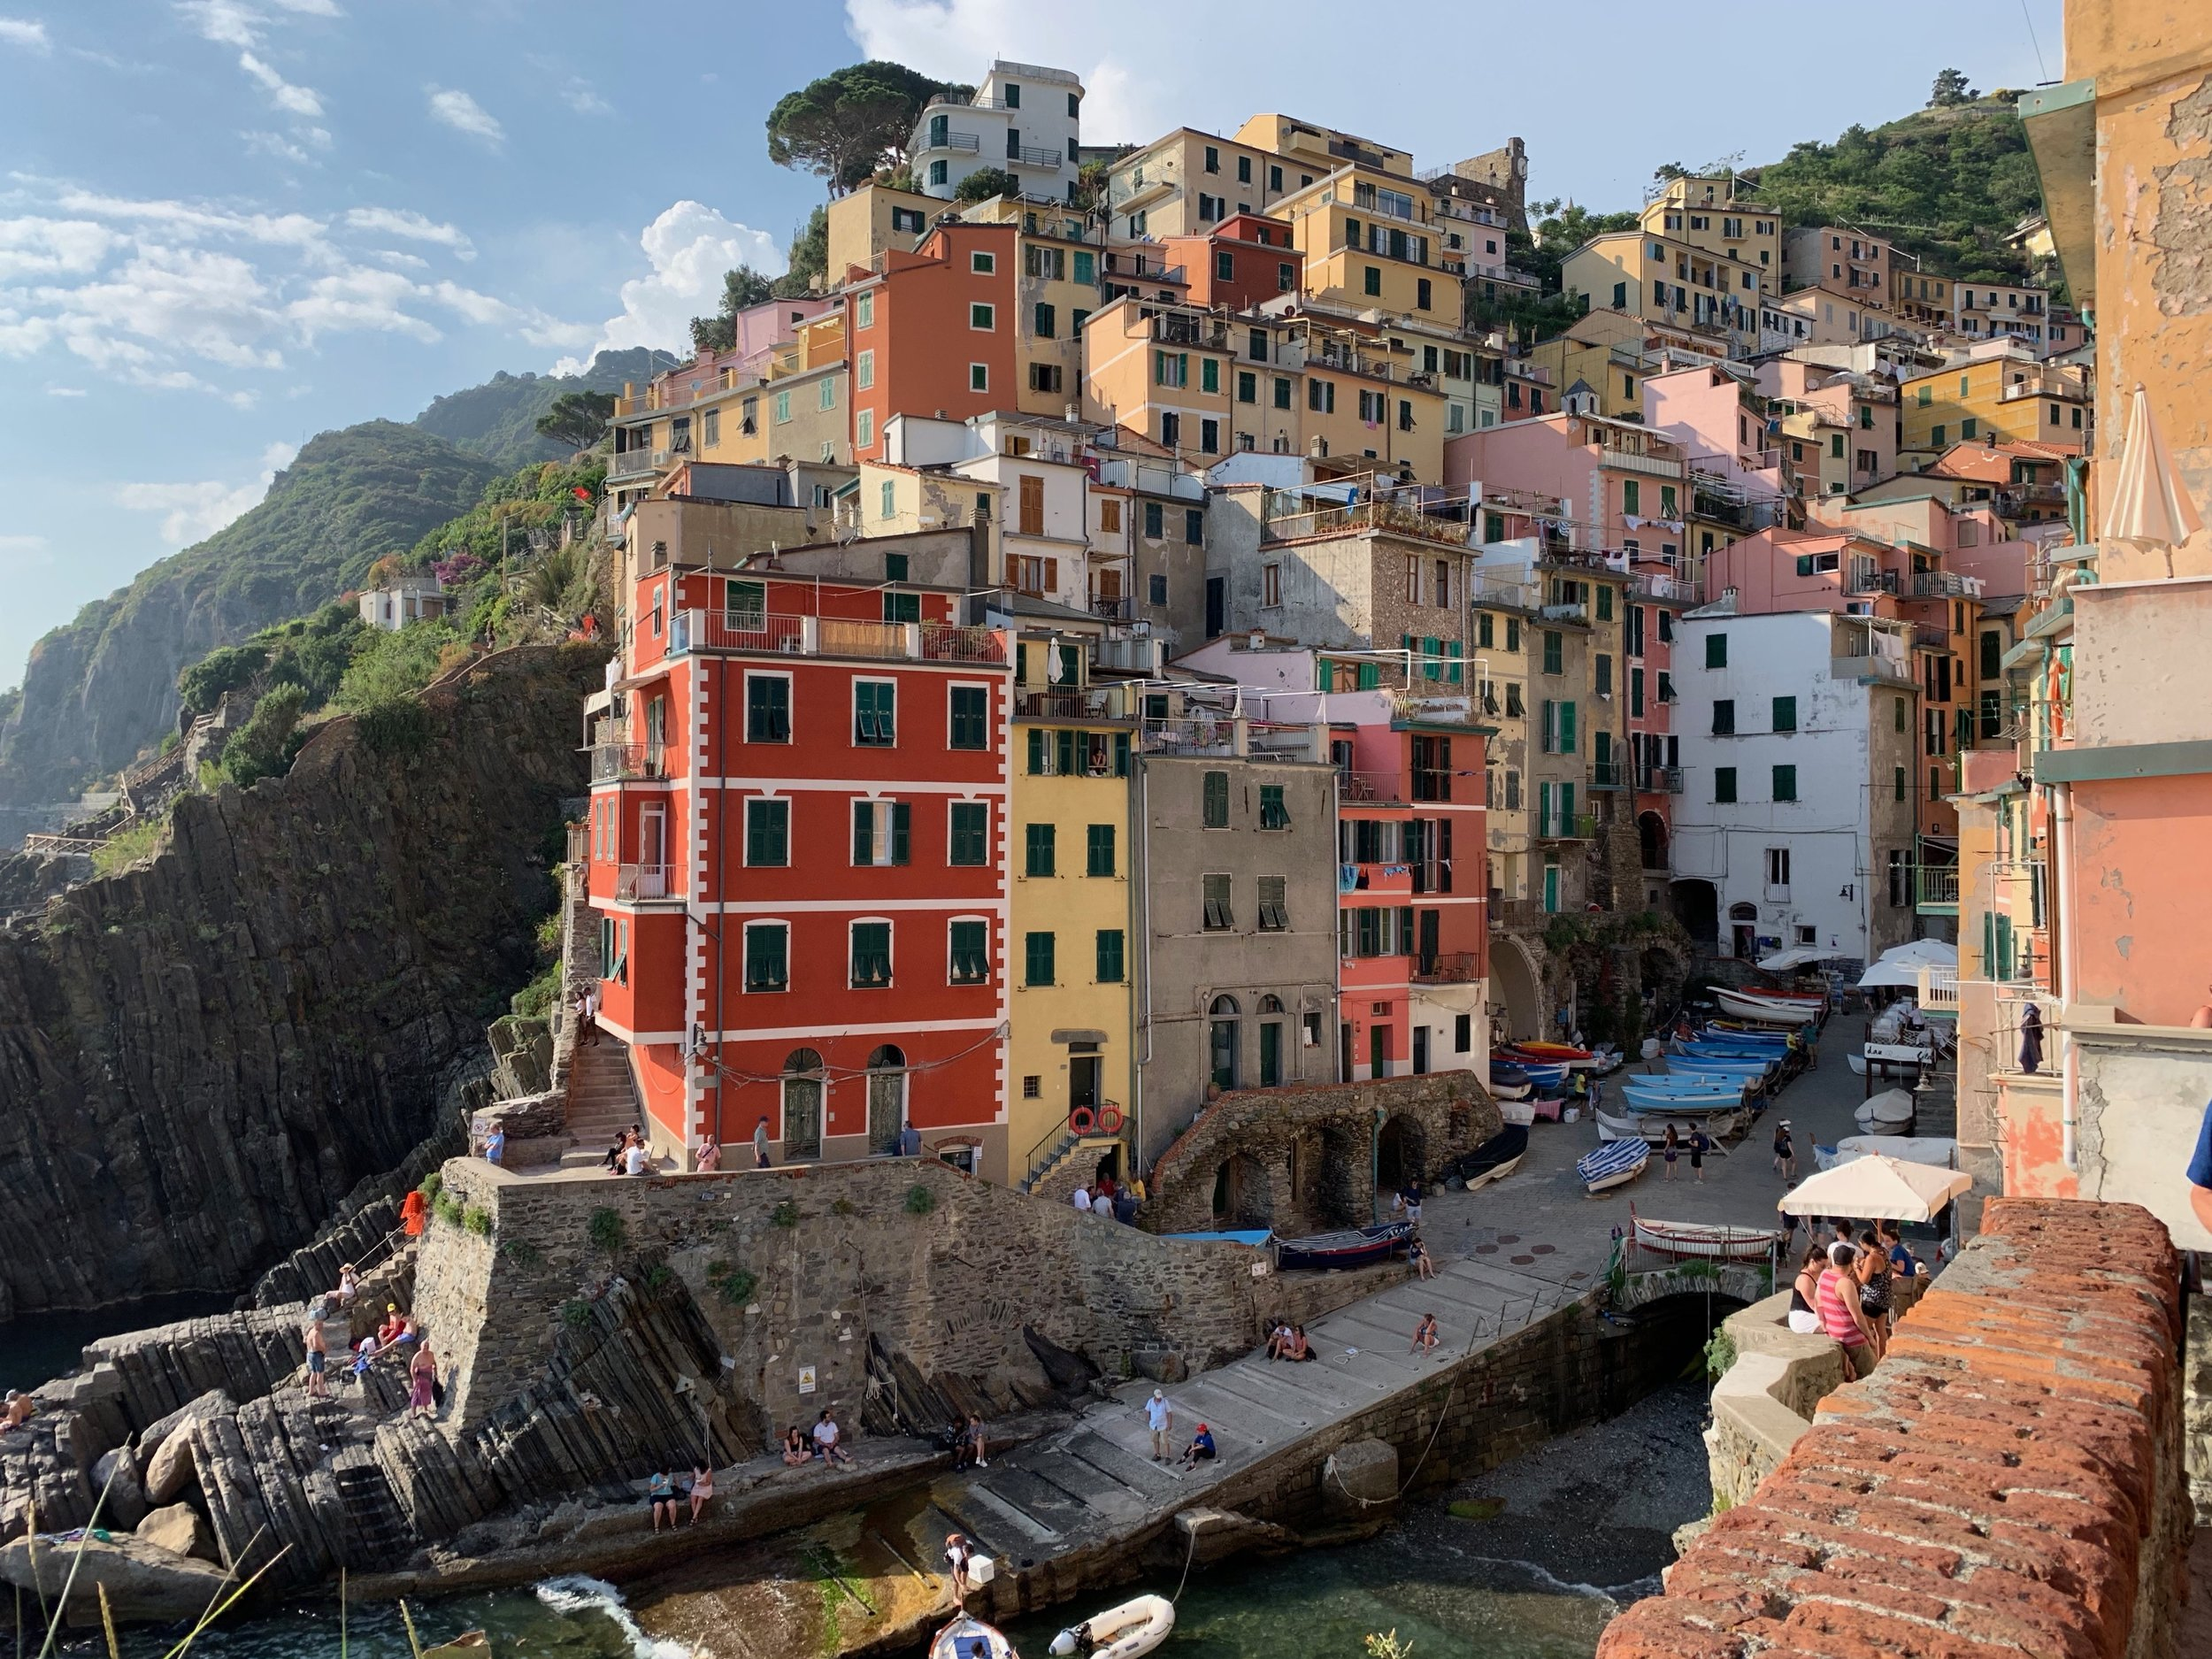 Cinque Terre is a string of centuries old seaside villages on the rugged Italian Riviera coastline. Each of the towns is built around the valley harbor and is filled with colorful buildings surrounded by terraced vineyards and farm land. Hiking from village to village going up one mountain and then down the next gave us sweeping vistas. This is the town of Riomaggiore.   Inspiration take away  — The colors, the community, and highly regarding the hard work of the fishing and farming industries in this area.